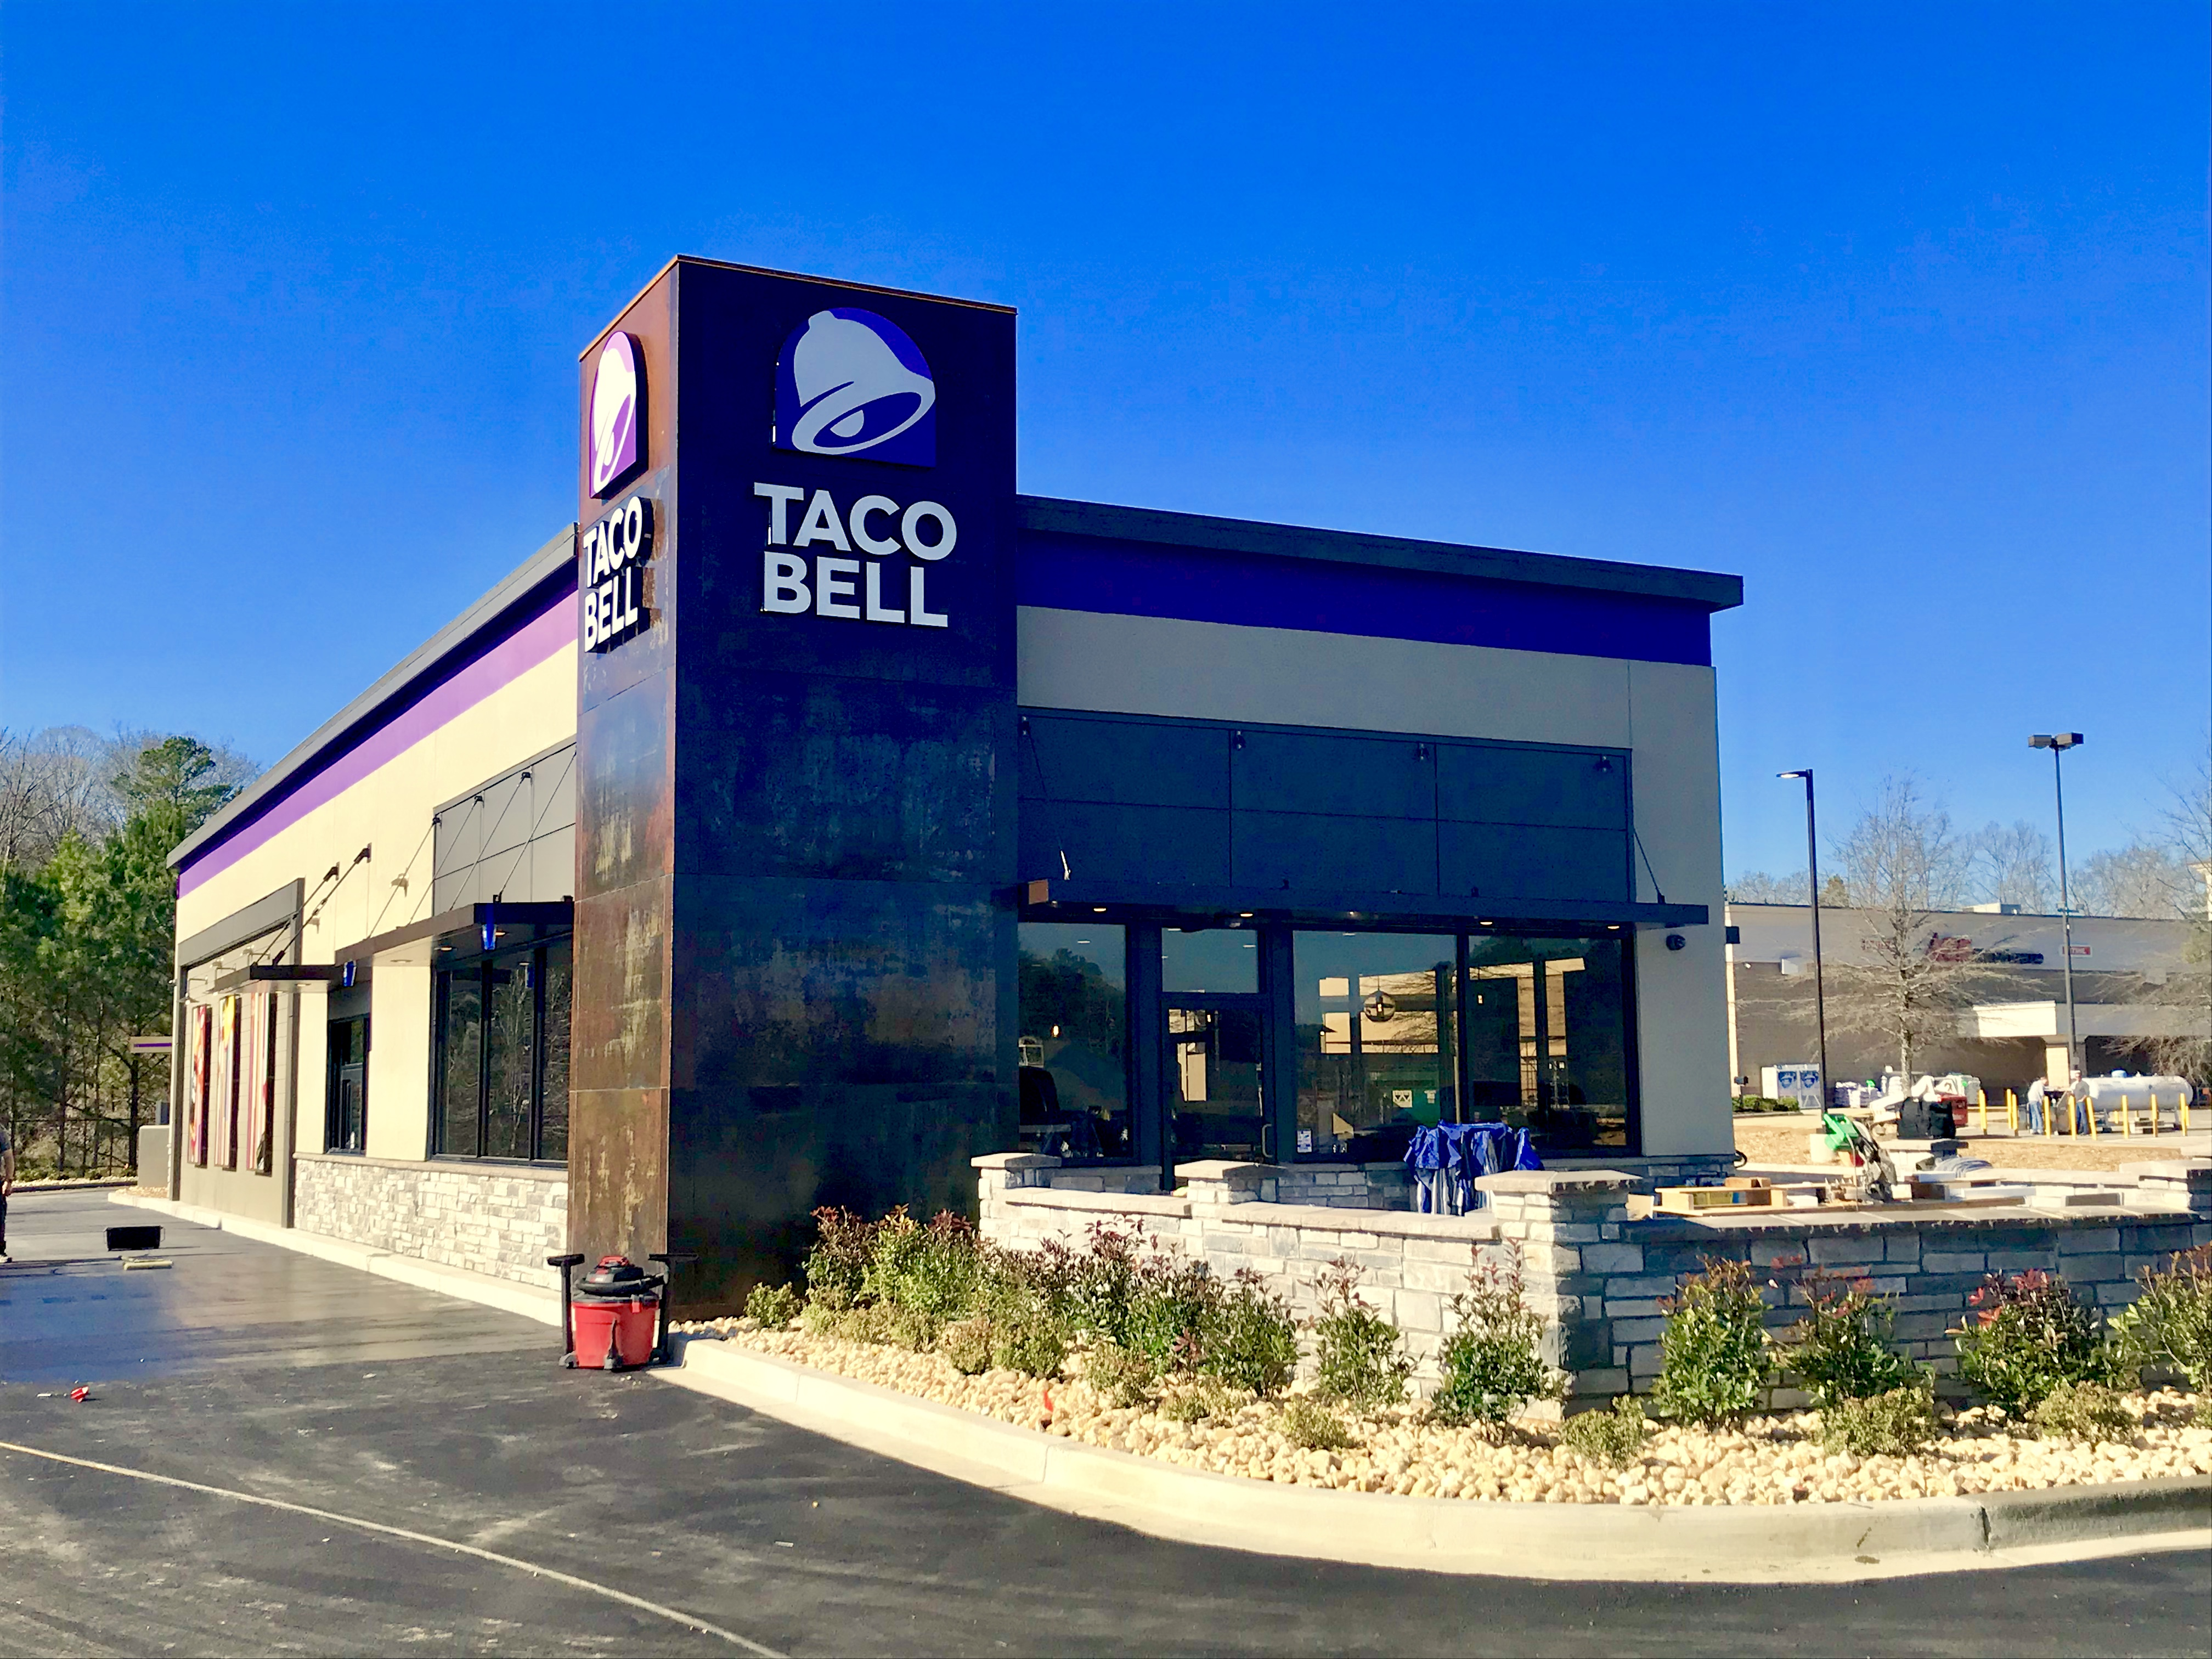 New state-of-the-art Taco Bell to open in Clay this Sunday